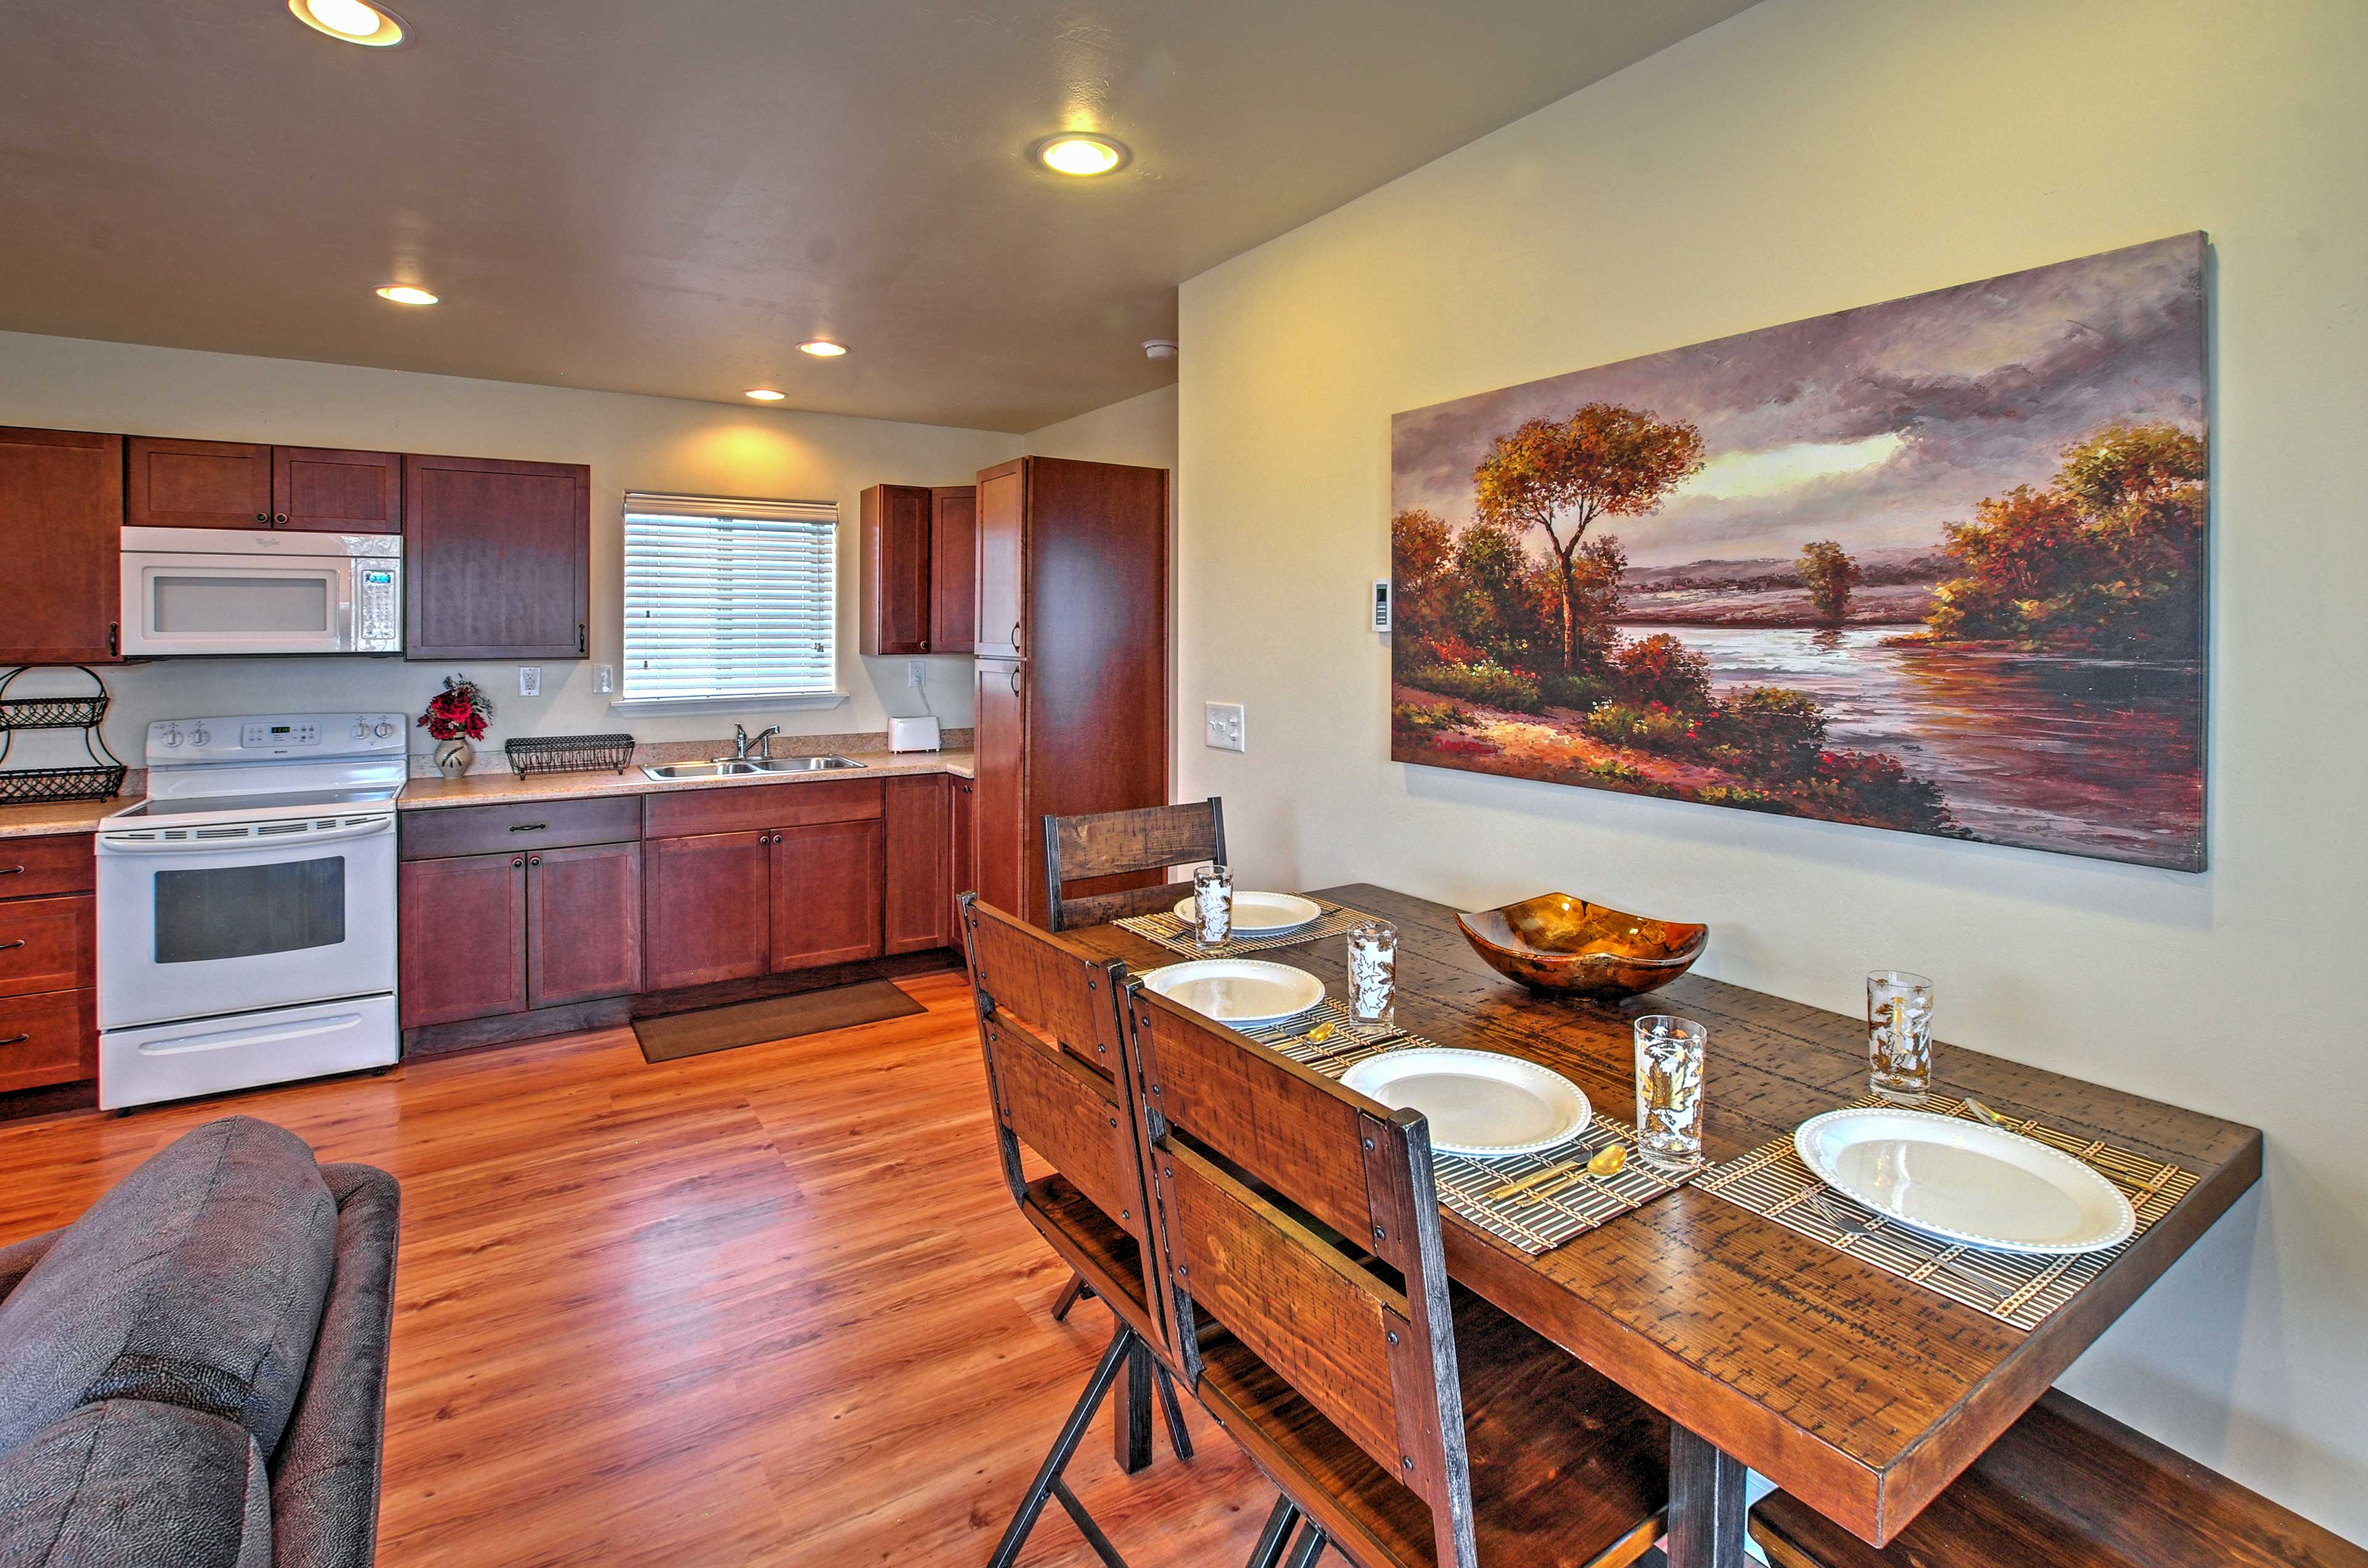 This recently updated home provides a great space to relax.